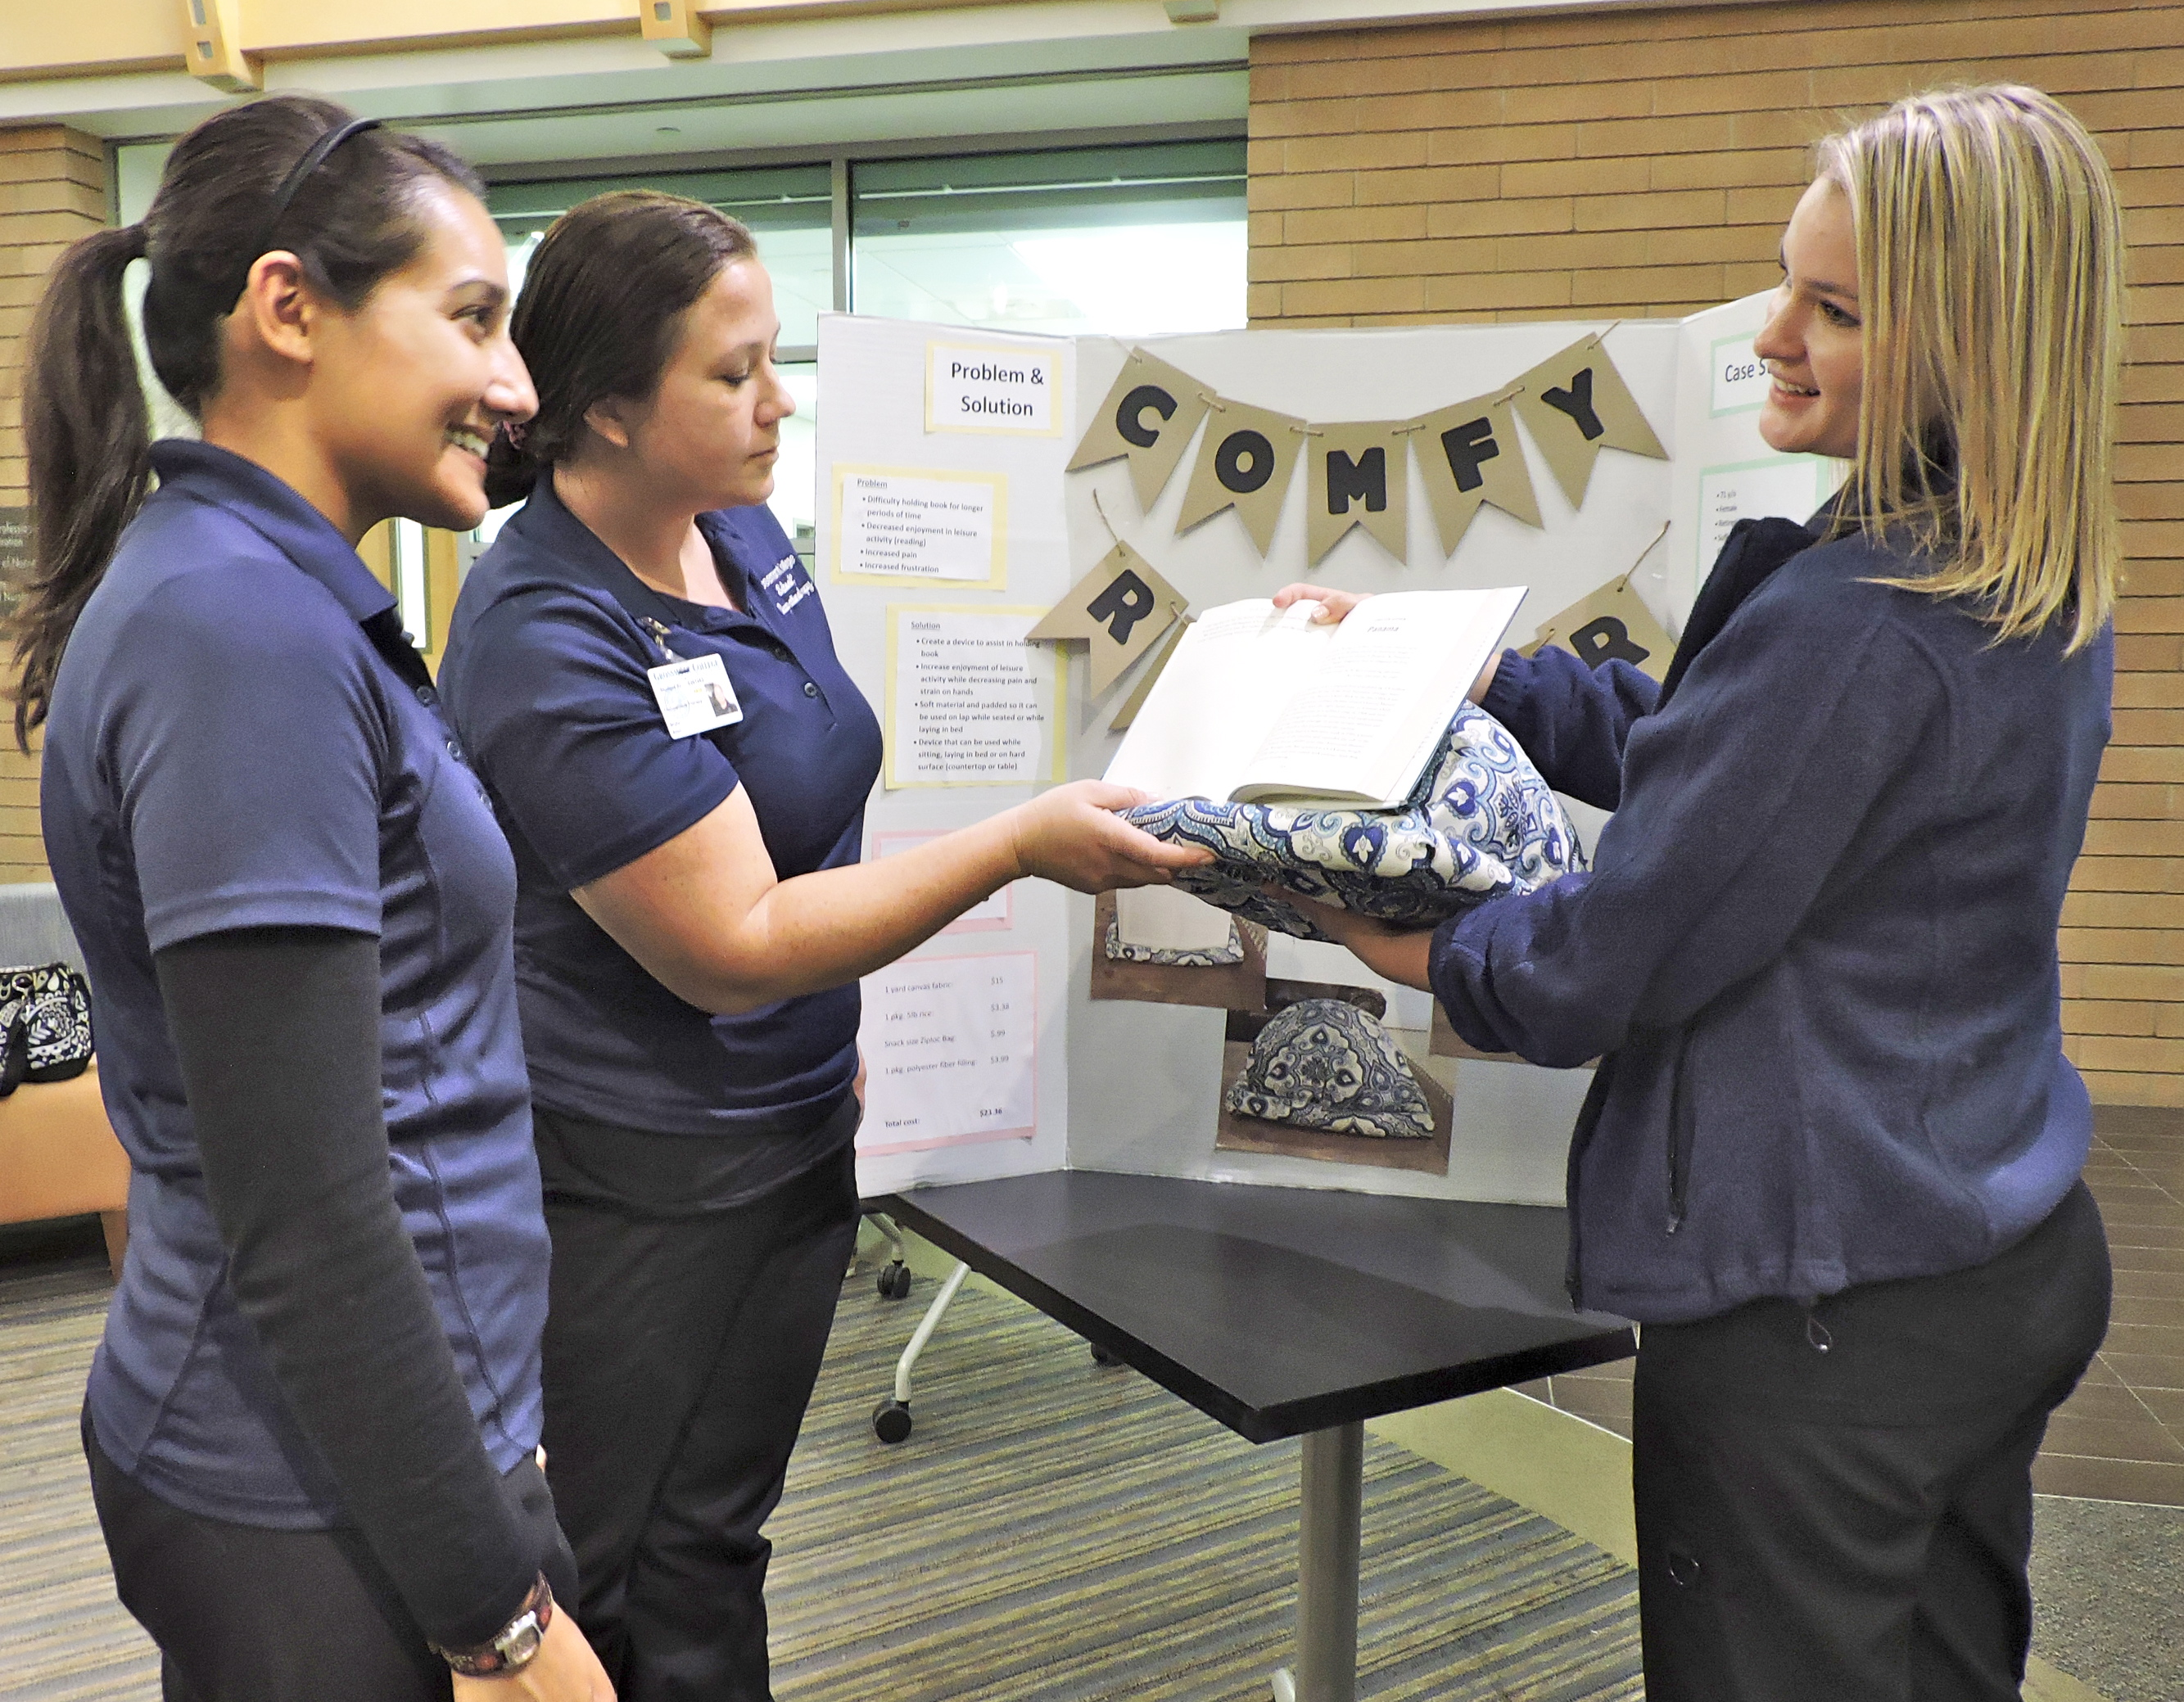 Amanda Plascencia, right, explains the benefits of the Comfy Reader, a book rest she created for her grandmother, whose osteoarthritis has affected her ability to hold books while reading. From left are fellow OTA students Patricia Cerda and Shylo Allen.